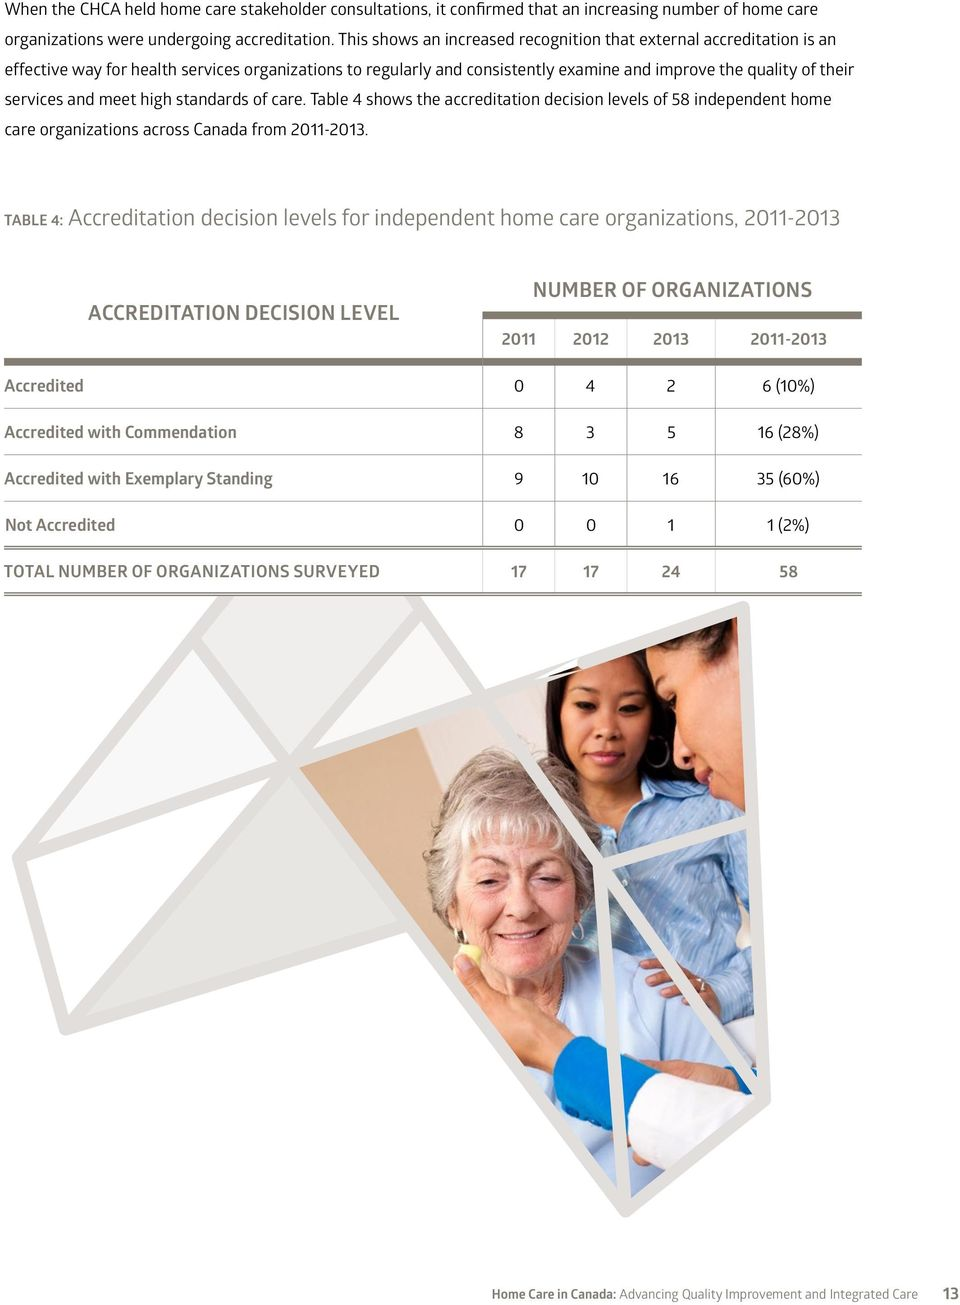 and meet high standards of care. Table 4 shows the accreditation decision levels of 58 independent home care organizations across Canada from 2011-2013.